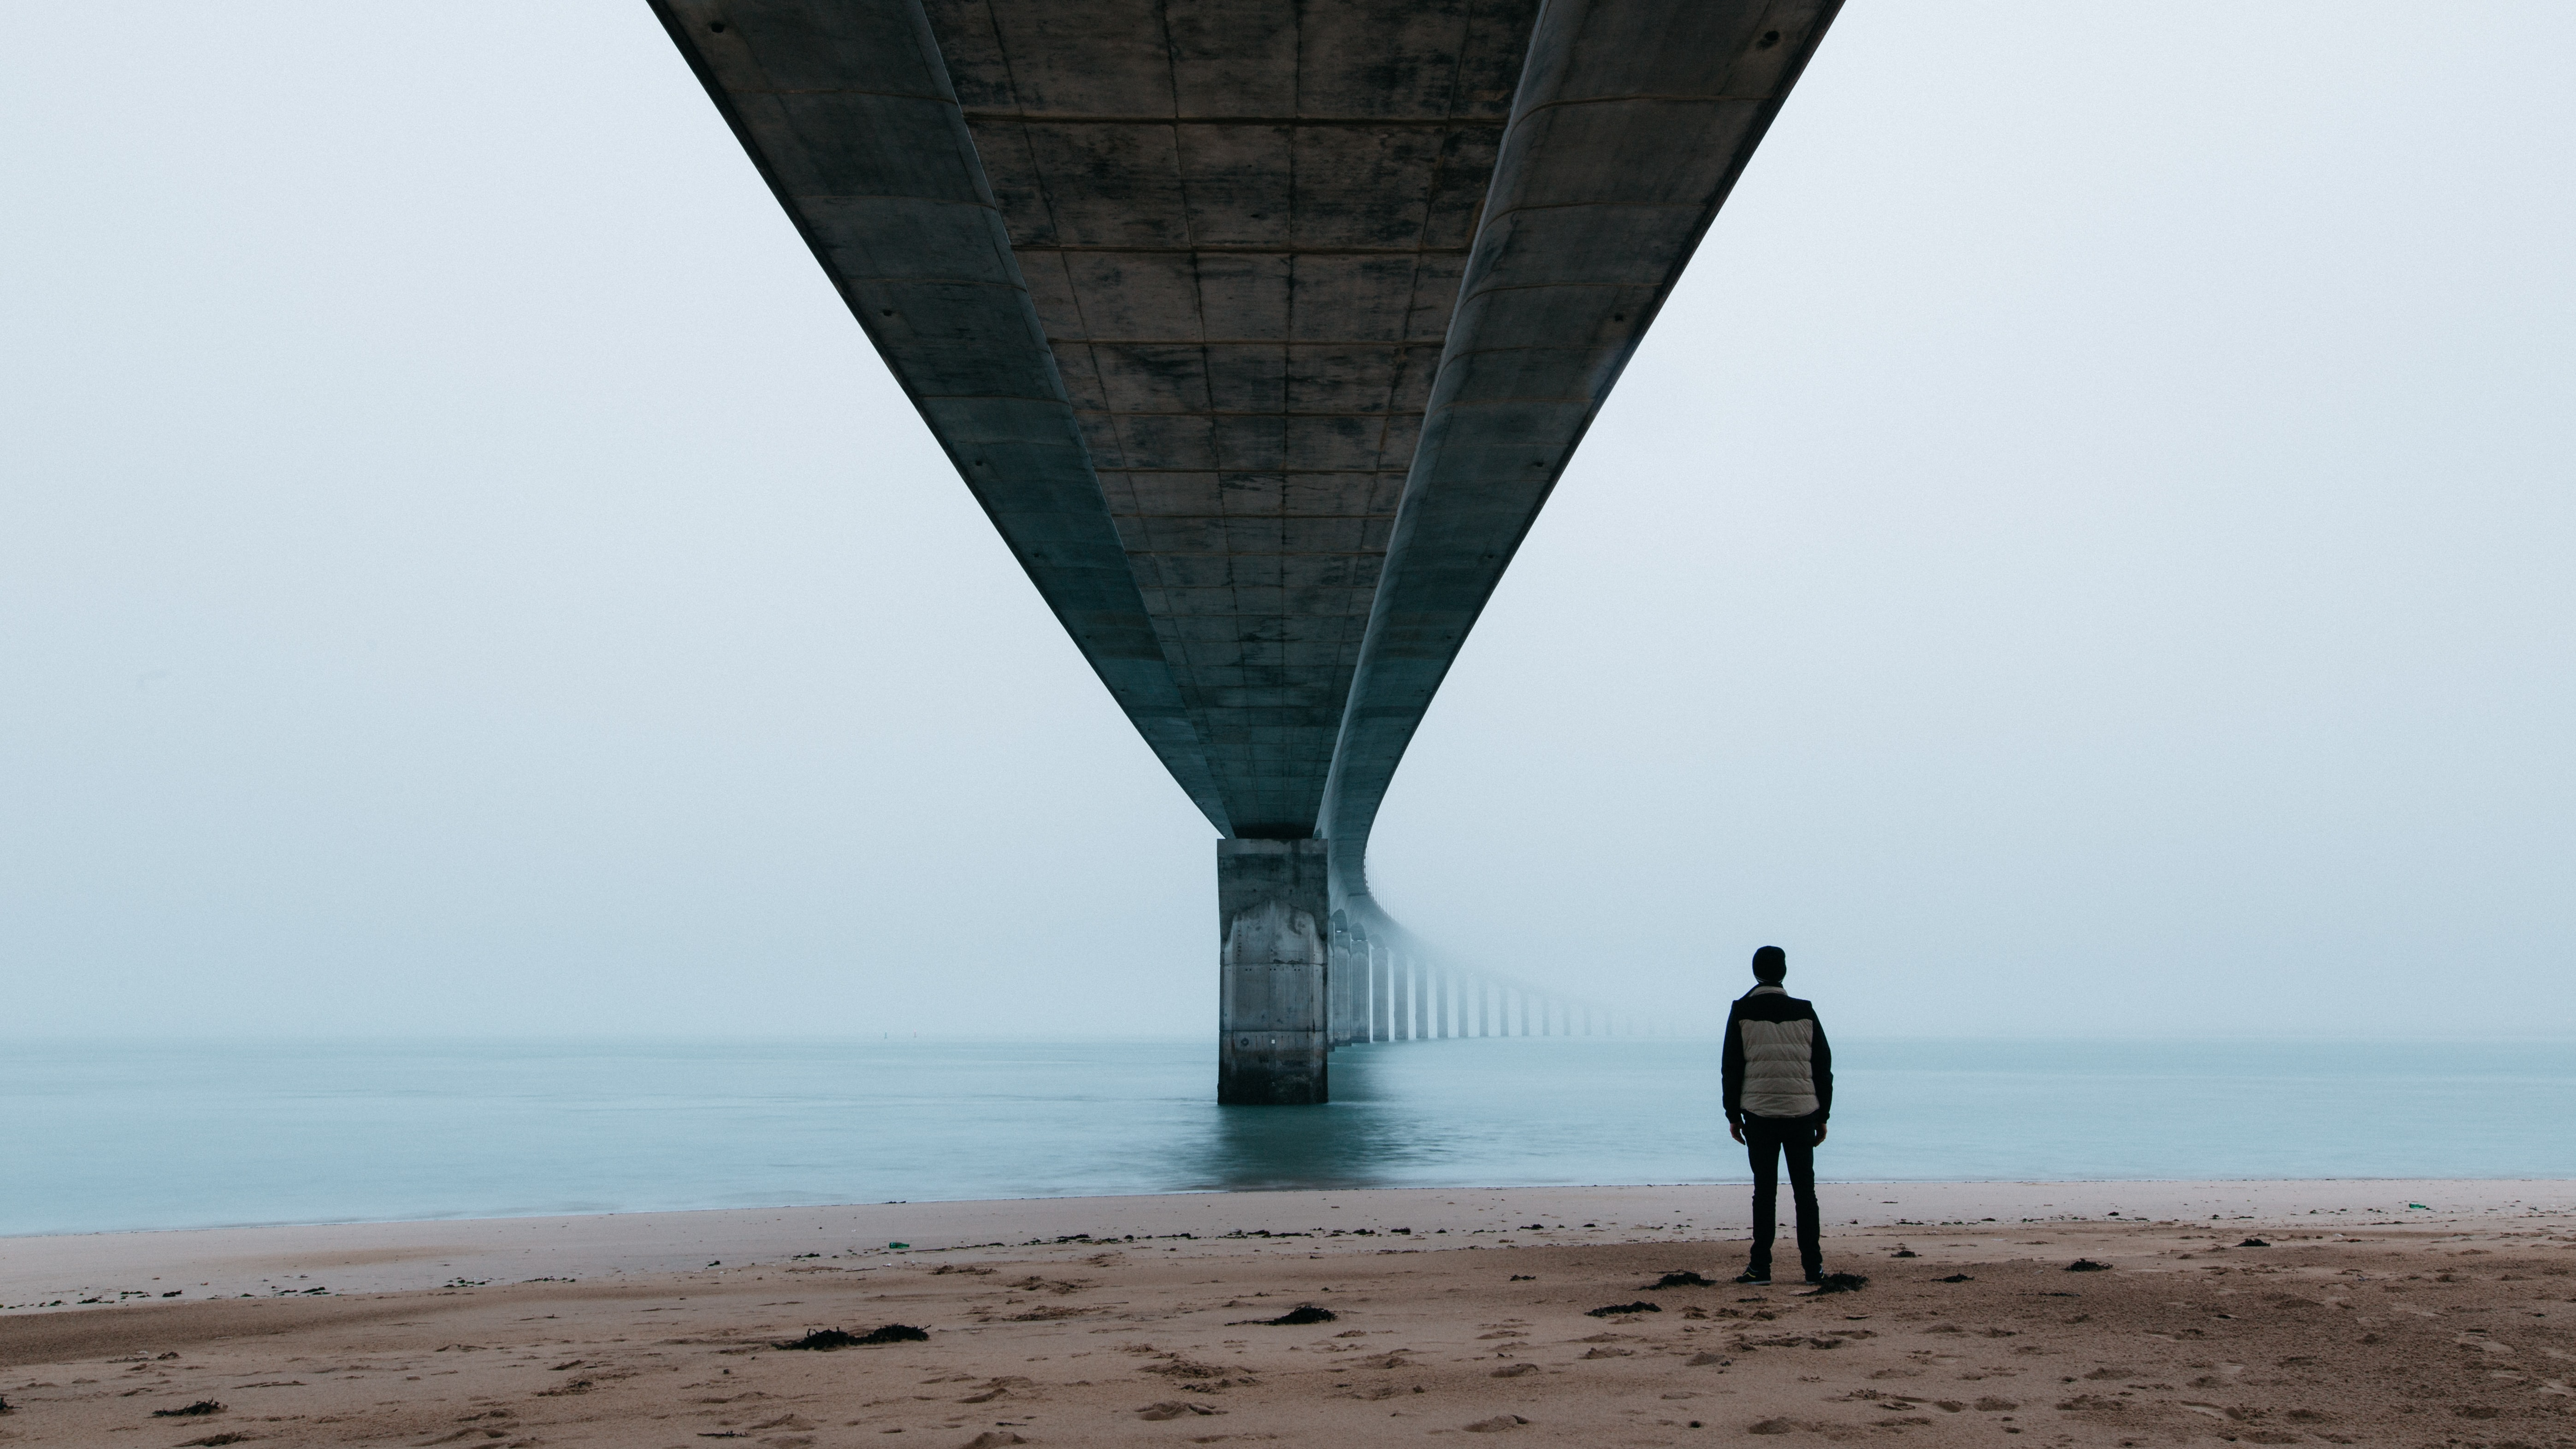 A man standing on the beach under a bridge looking out into an ocean covered in fog and mist